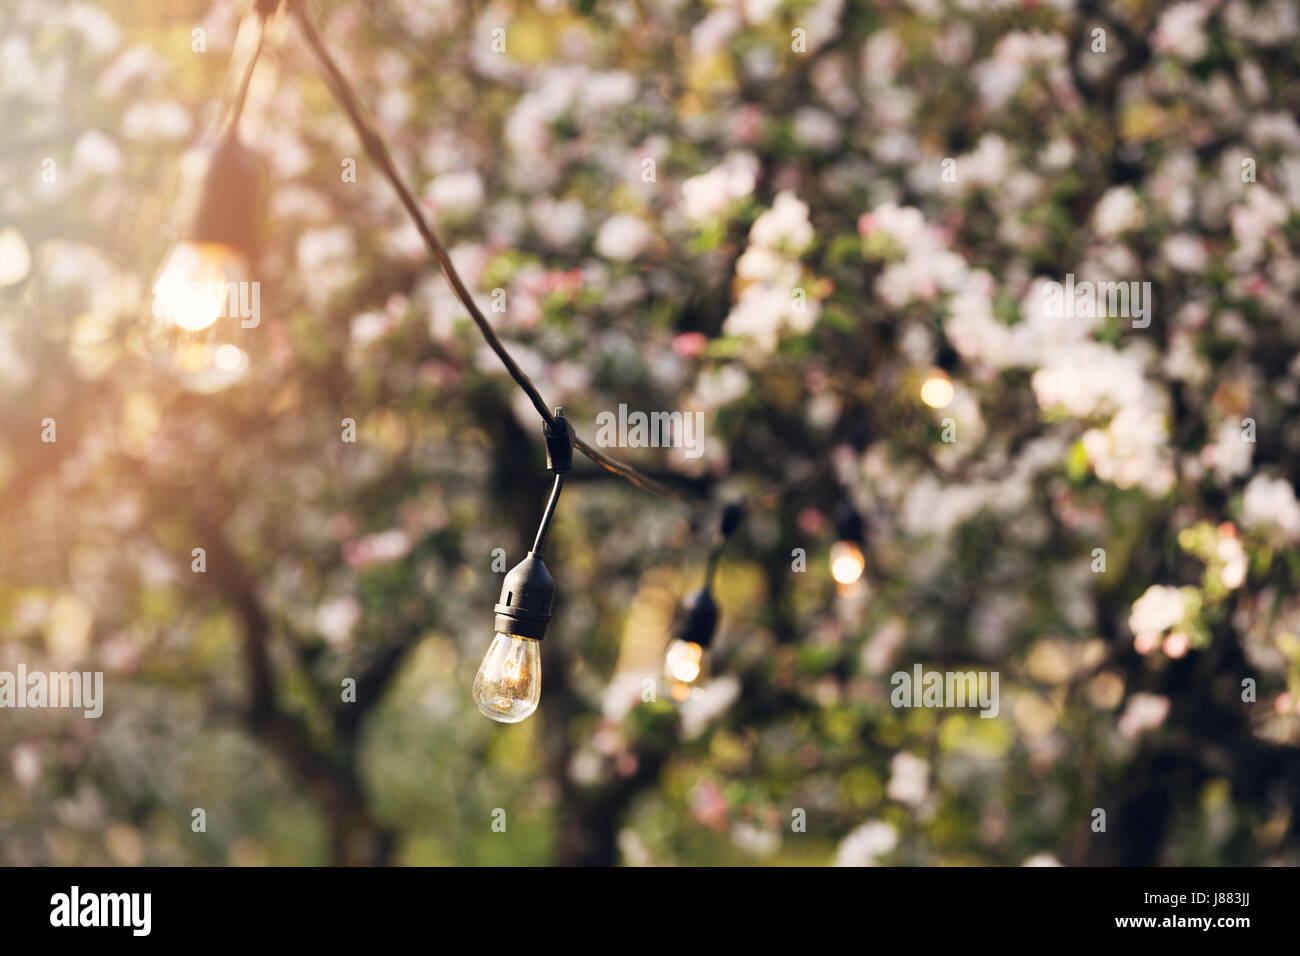 outdoor party string lights hanging in backyard garden Stock Photo